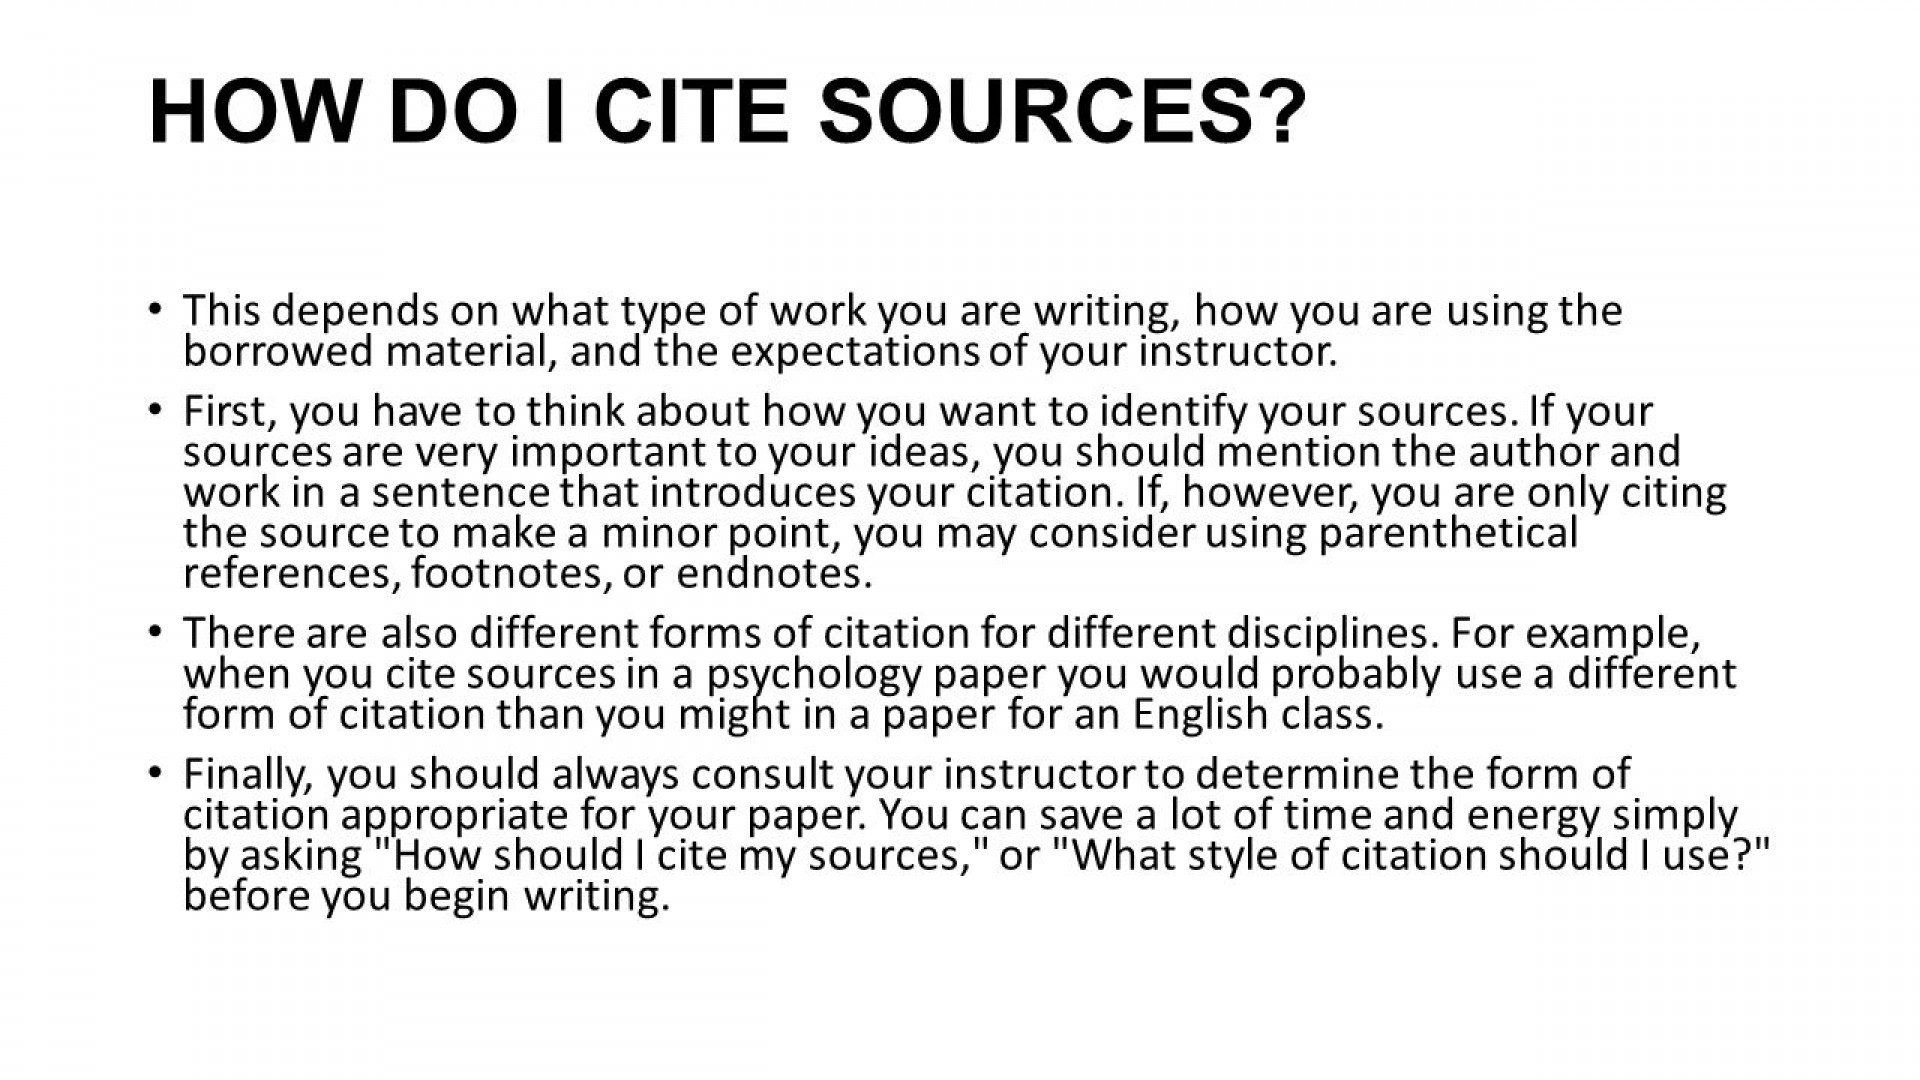 015 Citing Sources In An Essay Examples How Do U Cite Website To Write Bibliography Sl Secondary Apa References Mla Phenomenal Online 1920